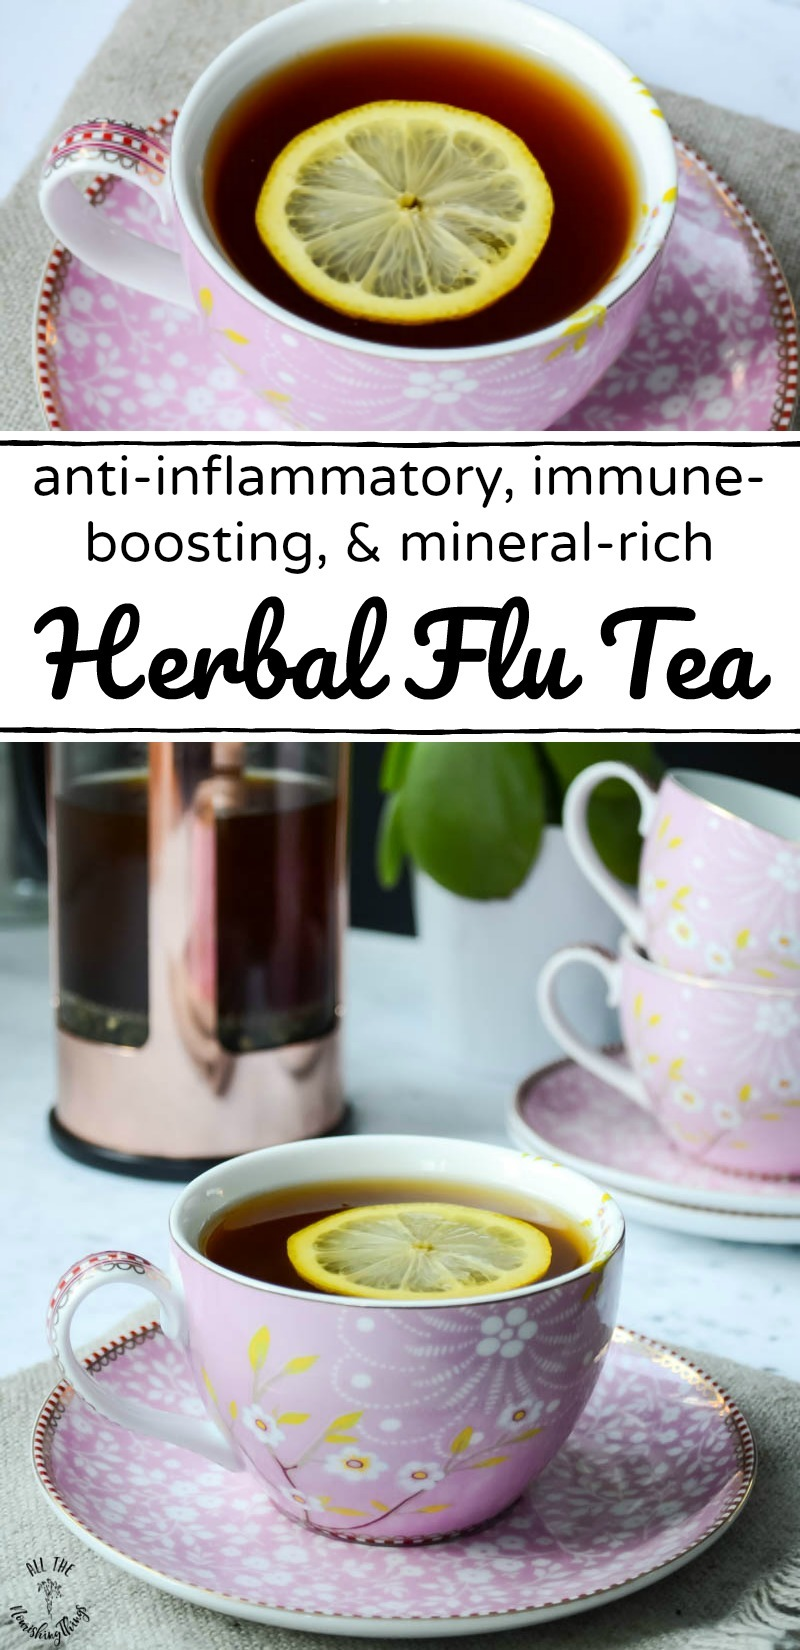 collage of 2 images of pink teacup of herbal flu tea with text overlay